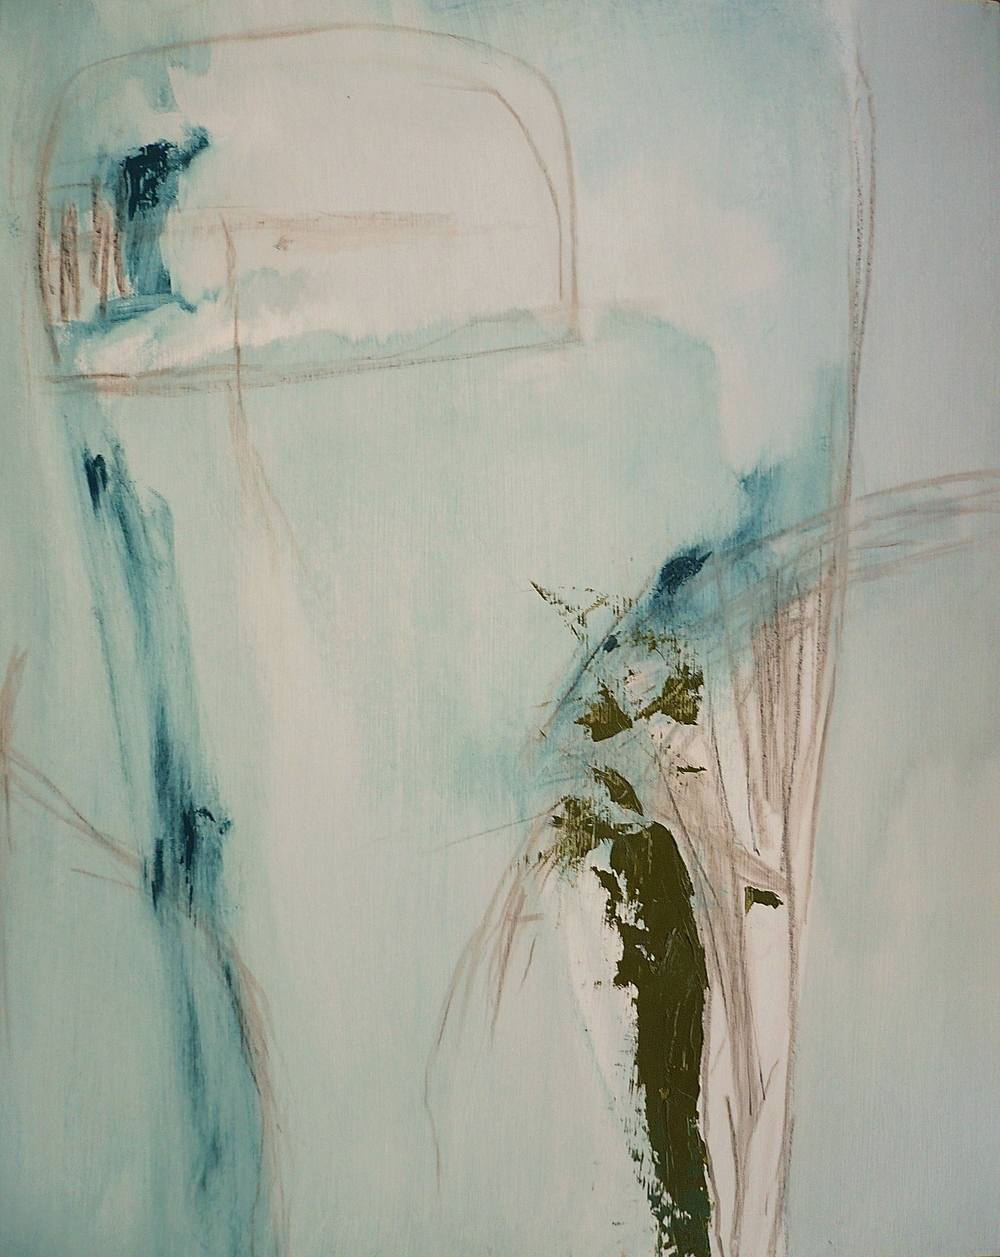 Cerulean series H, 2006  /  Oil on panel, 24 x 30